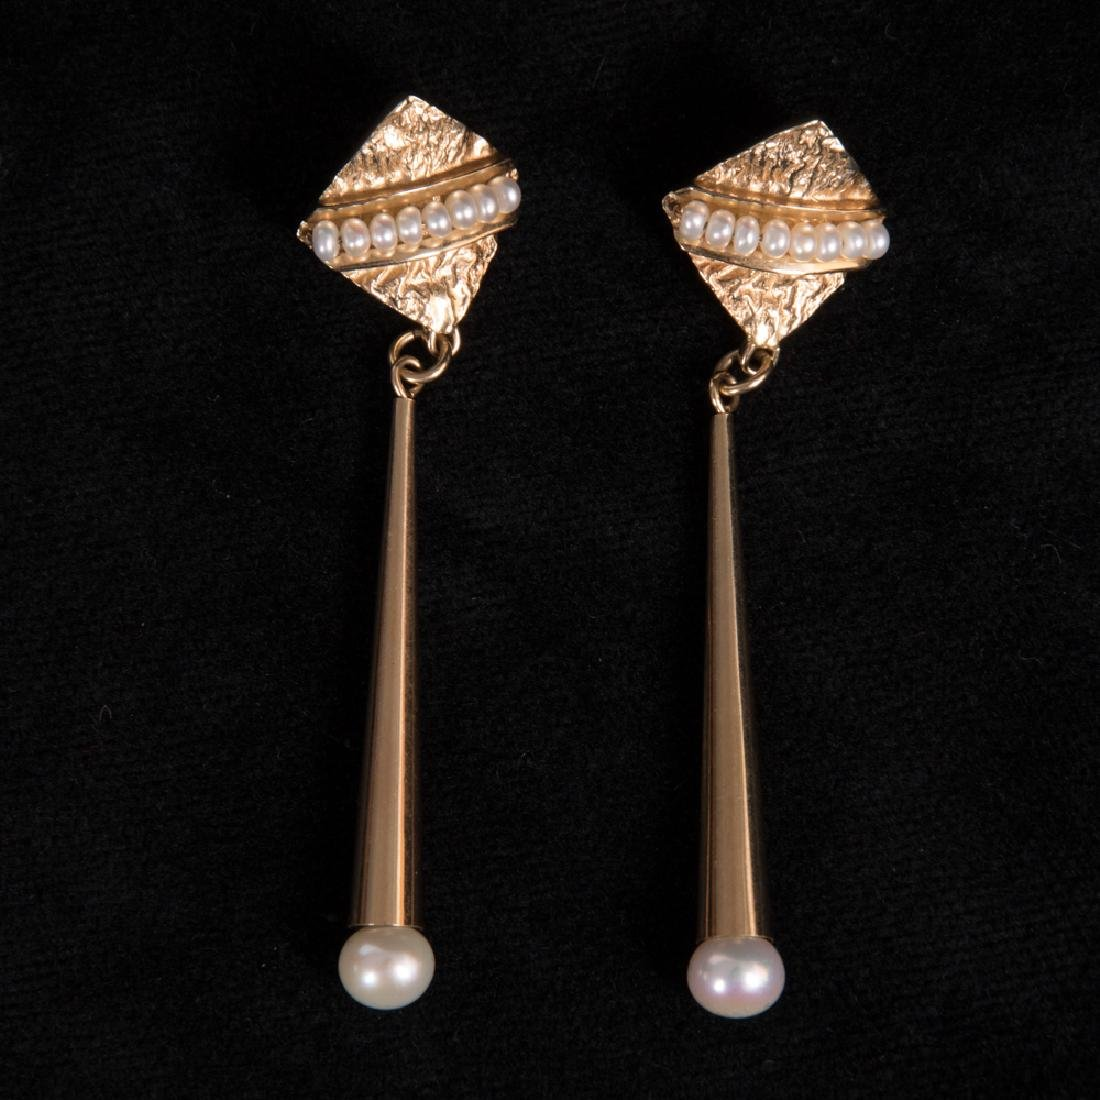 A Pair of 14kt. Yellow Gold and Pearl Drop Earrings,